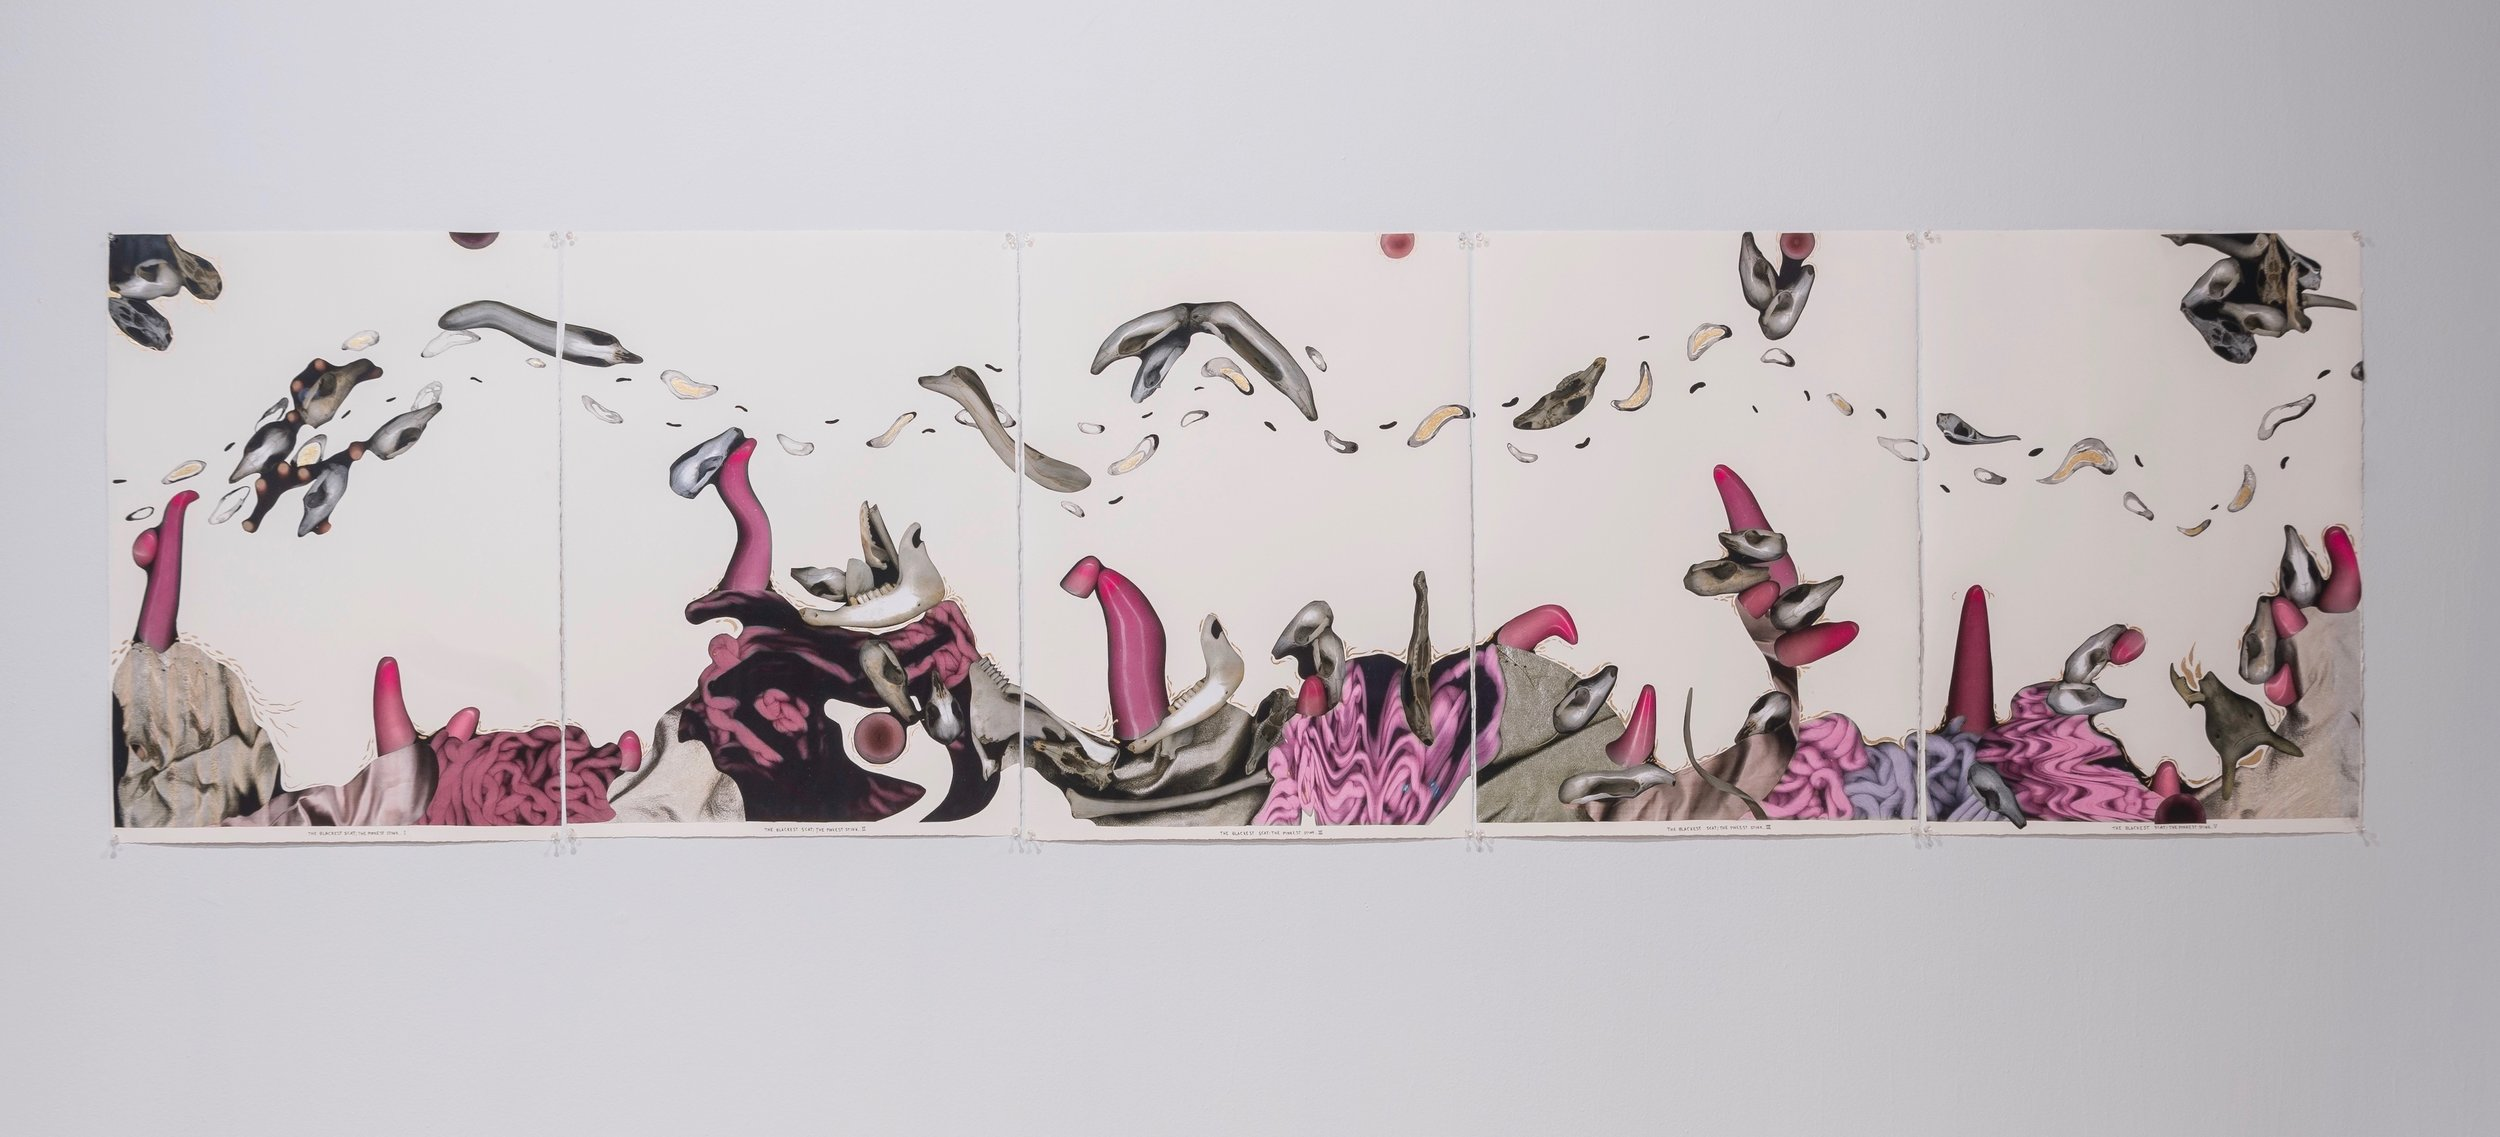 Emma Magnusson-Reid / 'The Blackest Scat; The Pinkest Stink', Collage and Mixed Media on Archers Paper, 76cm x 280cm, 2018, (image by, Jan Dallas)